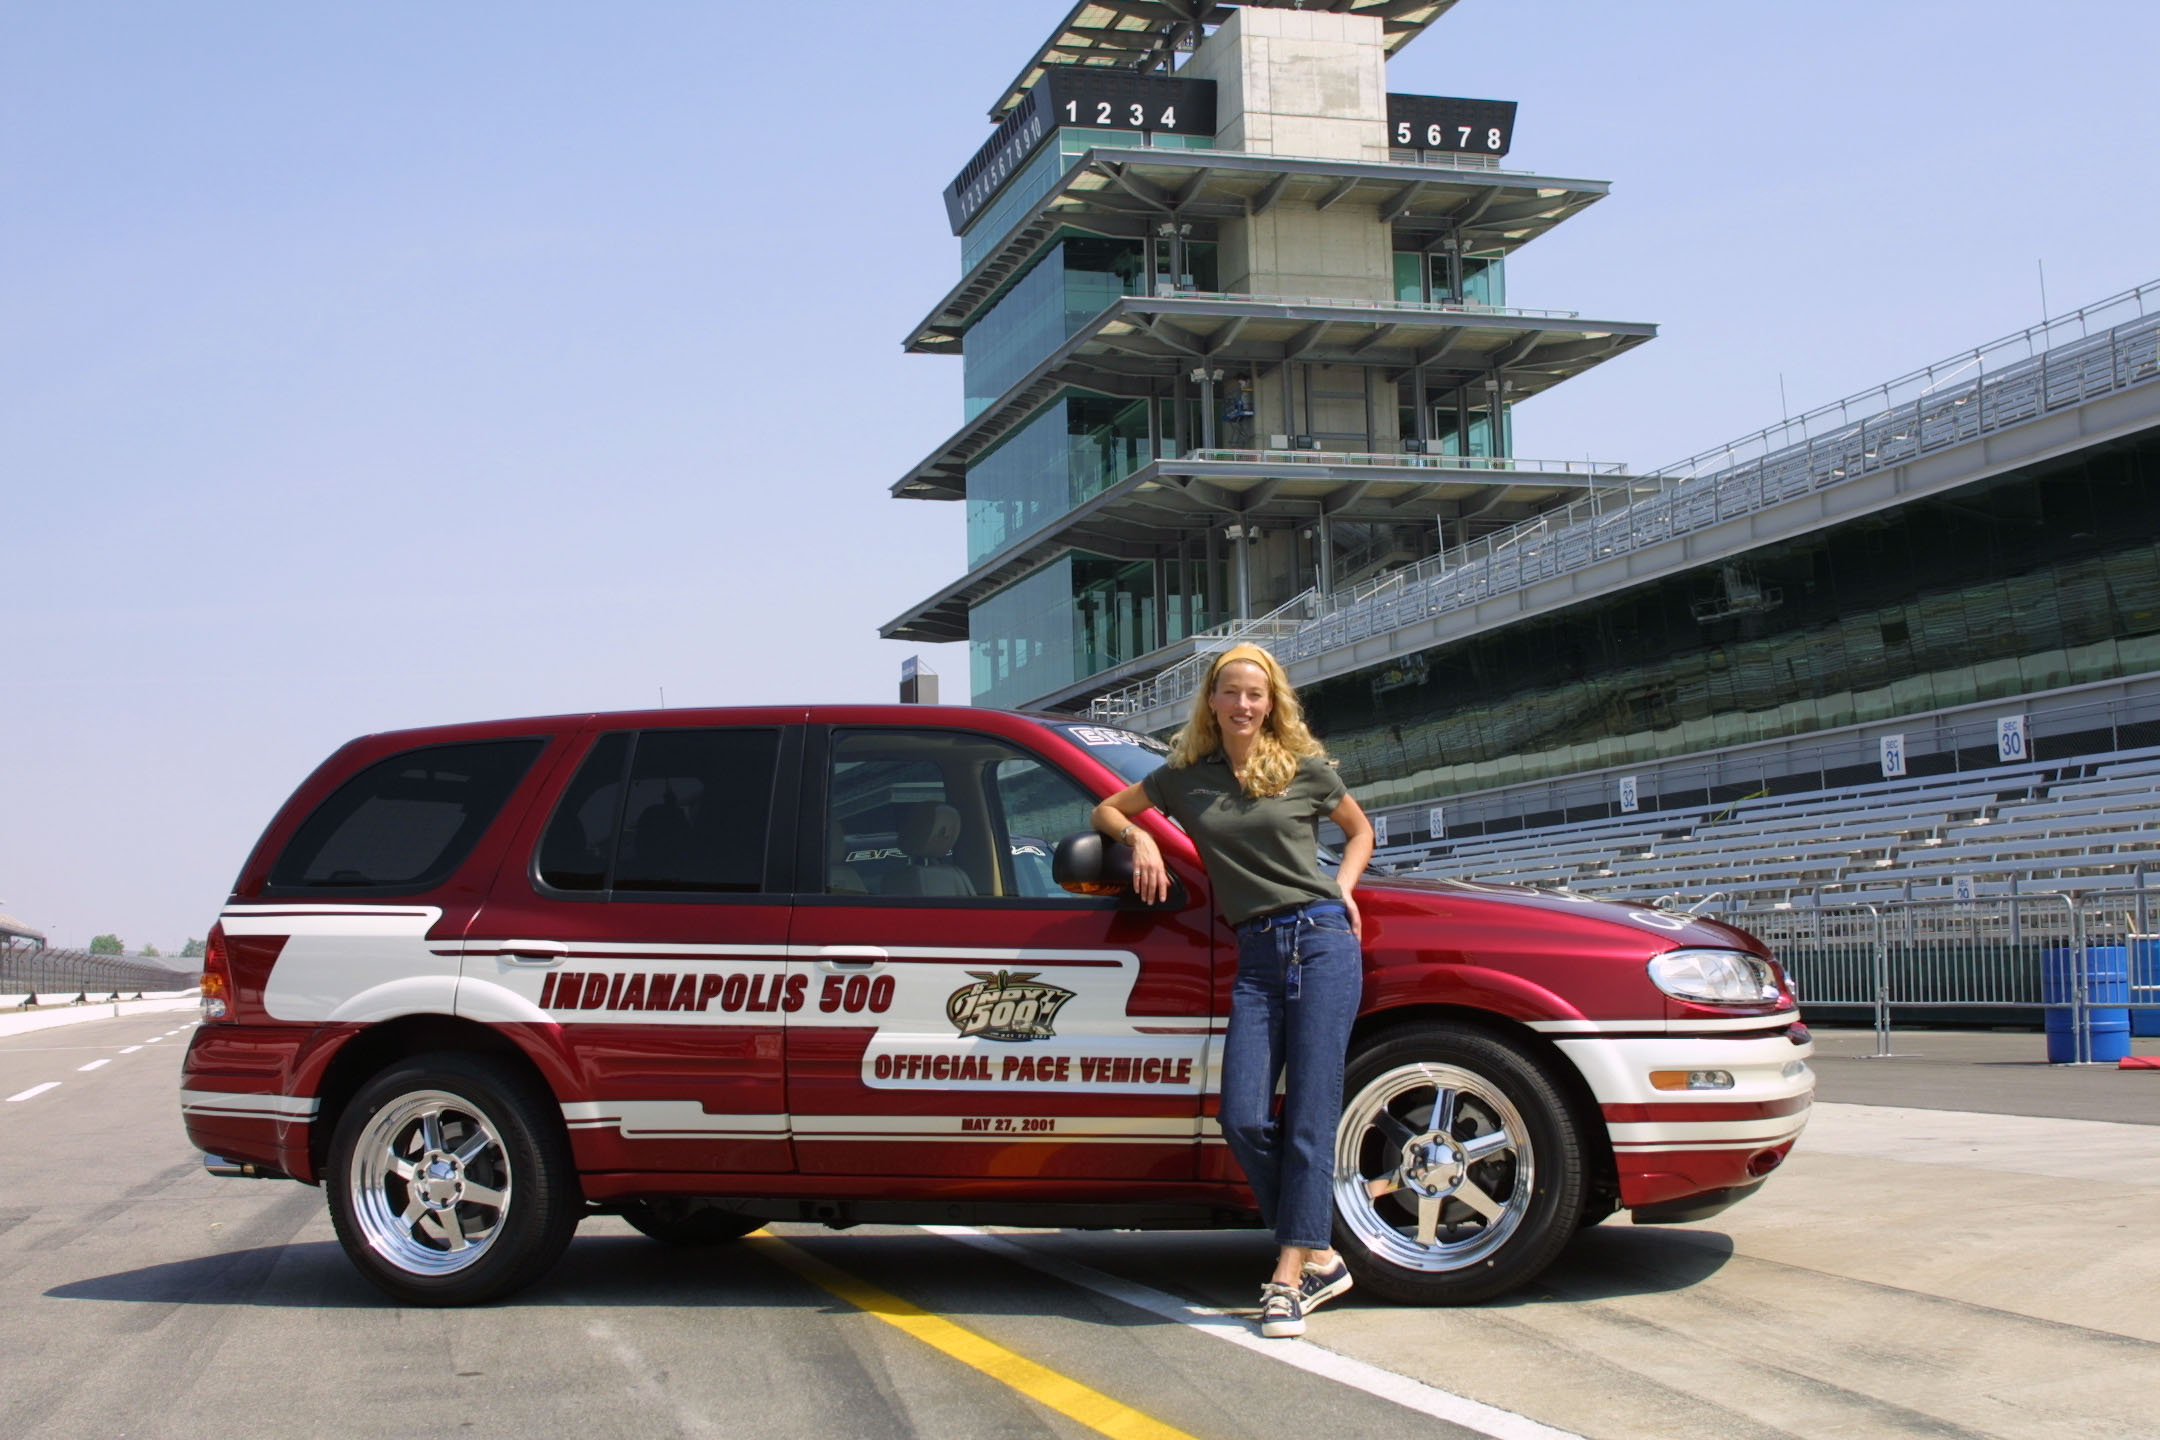 2018 Oldsmobile Bravada Indy Pace Car photo - 2